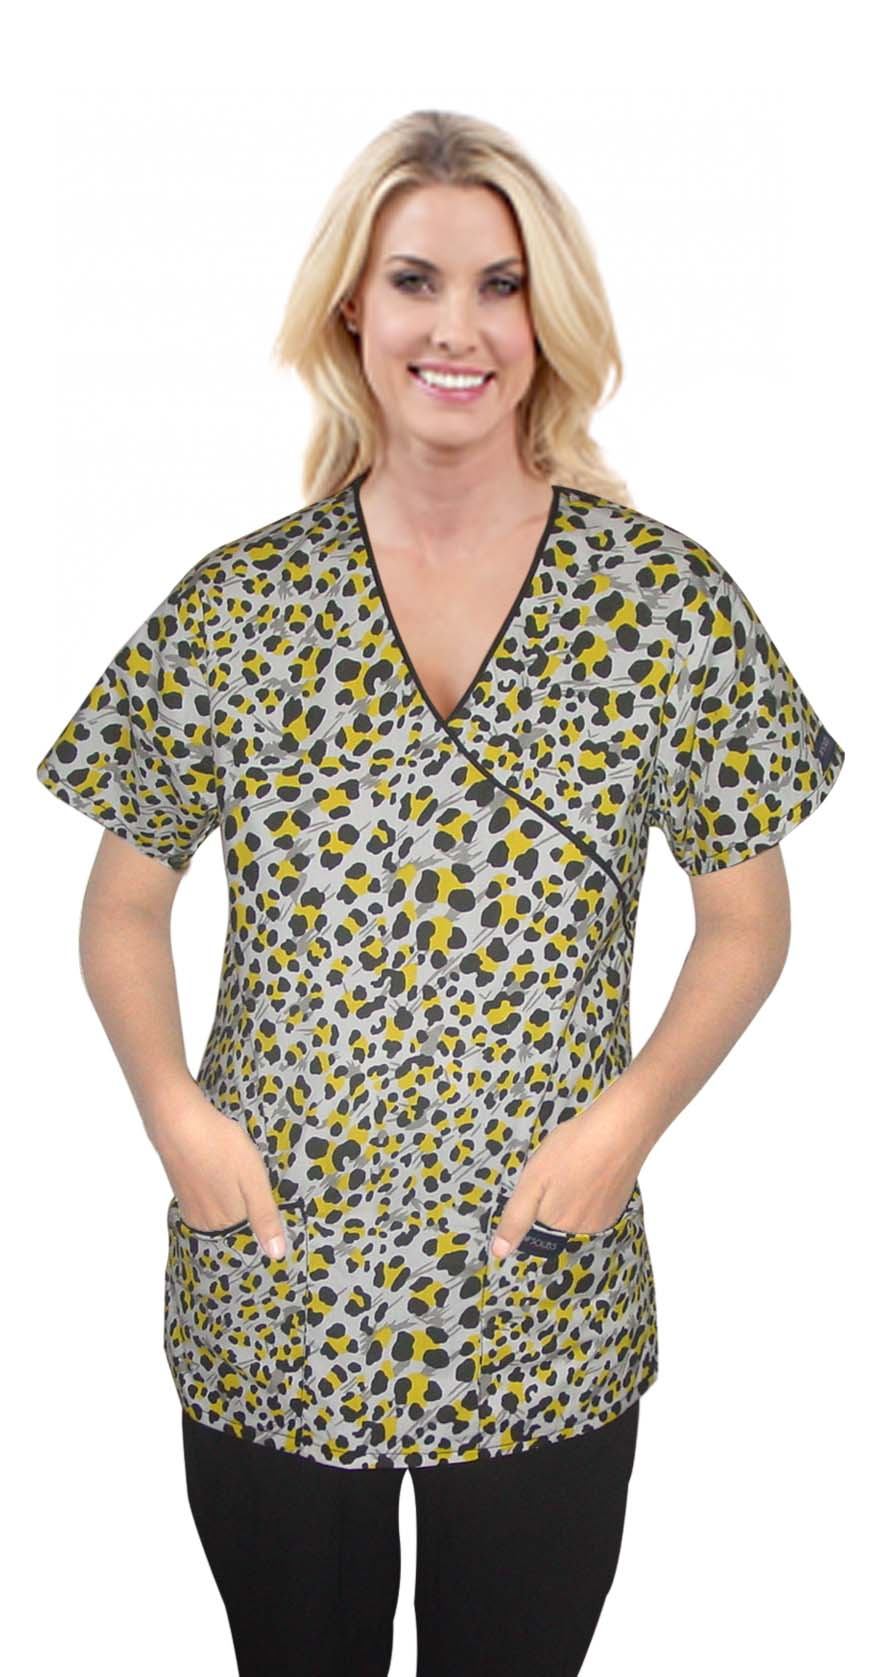 Top mock wrap 3 pocket half sleeve in yellow and black print with black piping